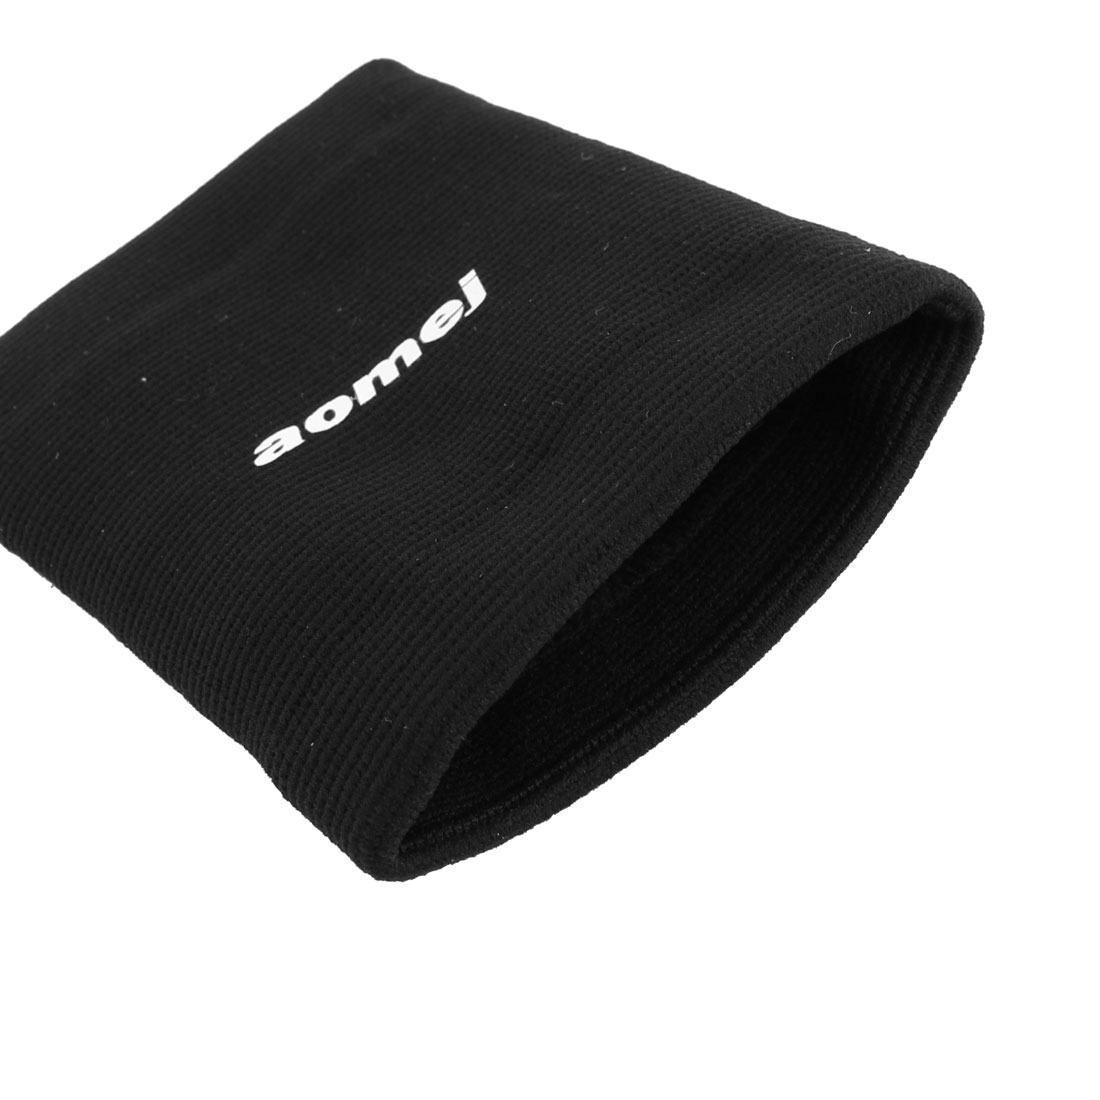 Household Outdoor Stretchy Bandage Brace Wrist Supporter Protector Black 2 PCS - image 2 of 3